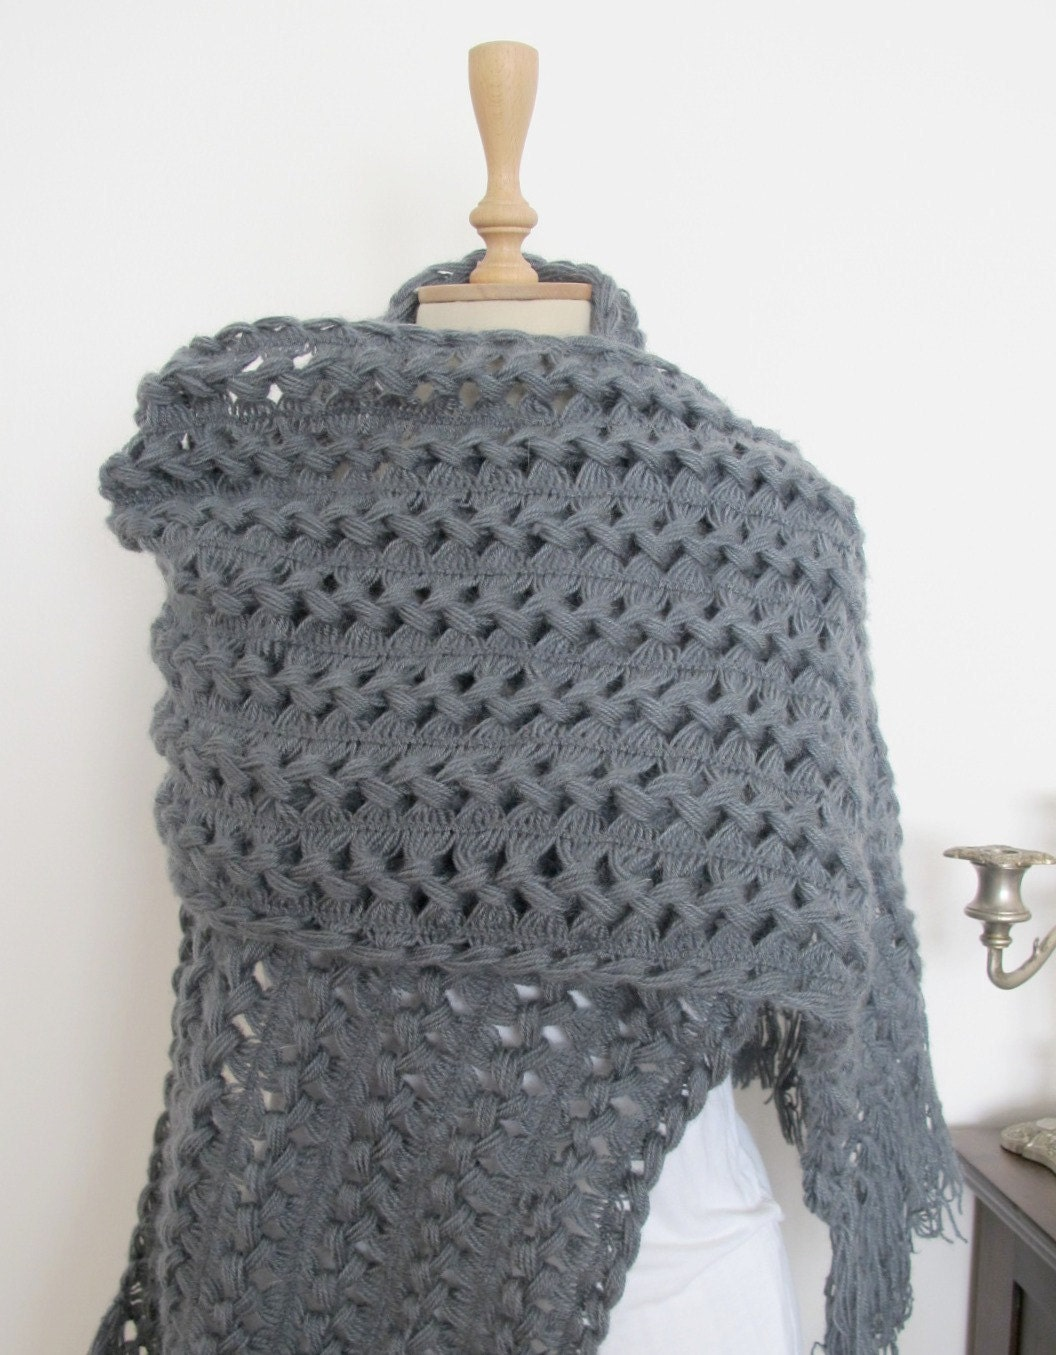 Crochet Patterns Shawls And Wraps : CROCHET ETERNITY PATTERN SCARF SHAWL WRAP Crochet Patterns